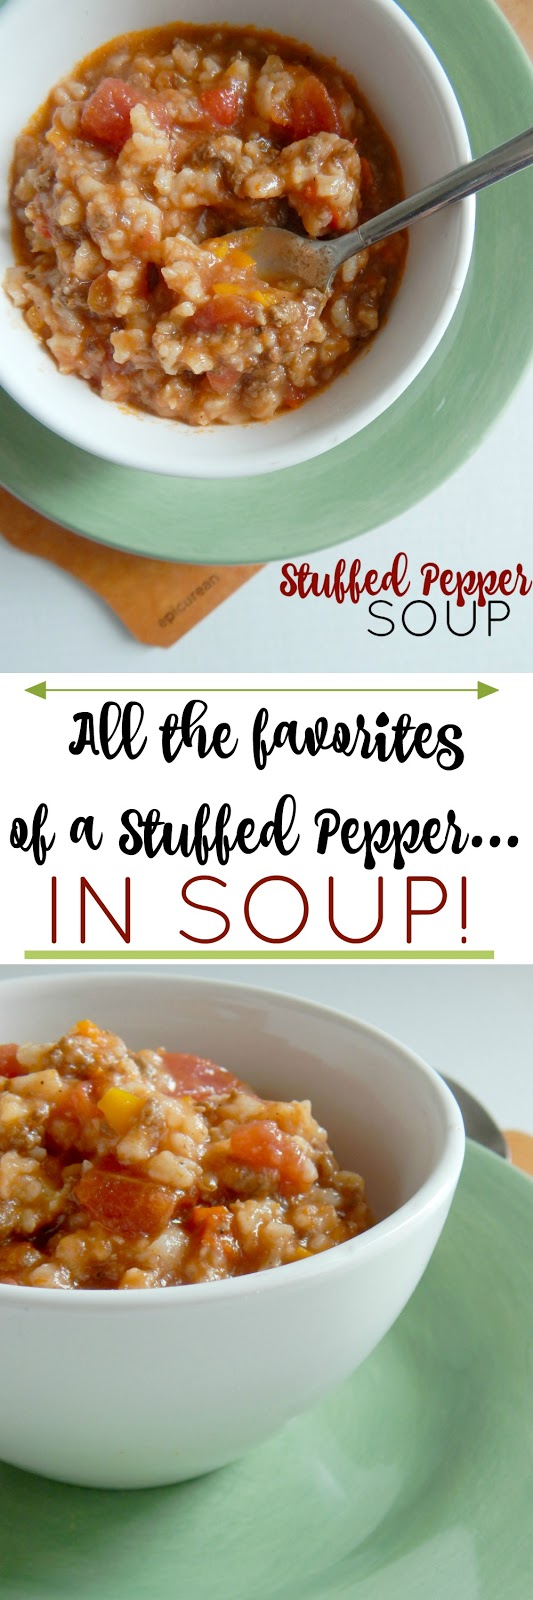 Stuffed Pepper Soup...all your favorites in the filling of a stuffed pepper, but in soup!  Sweet, peppery and filling! (sweetandsavoryfood.com)